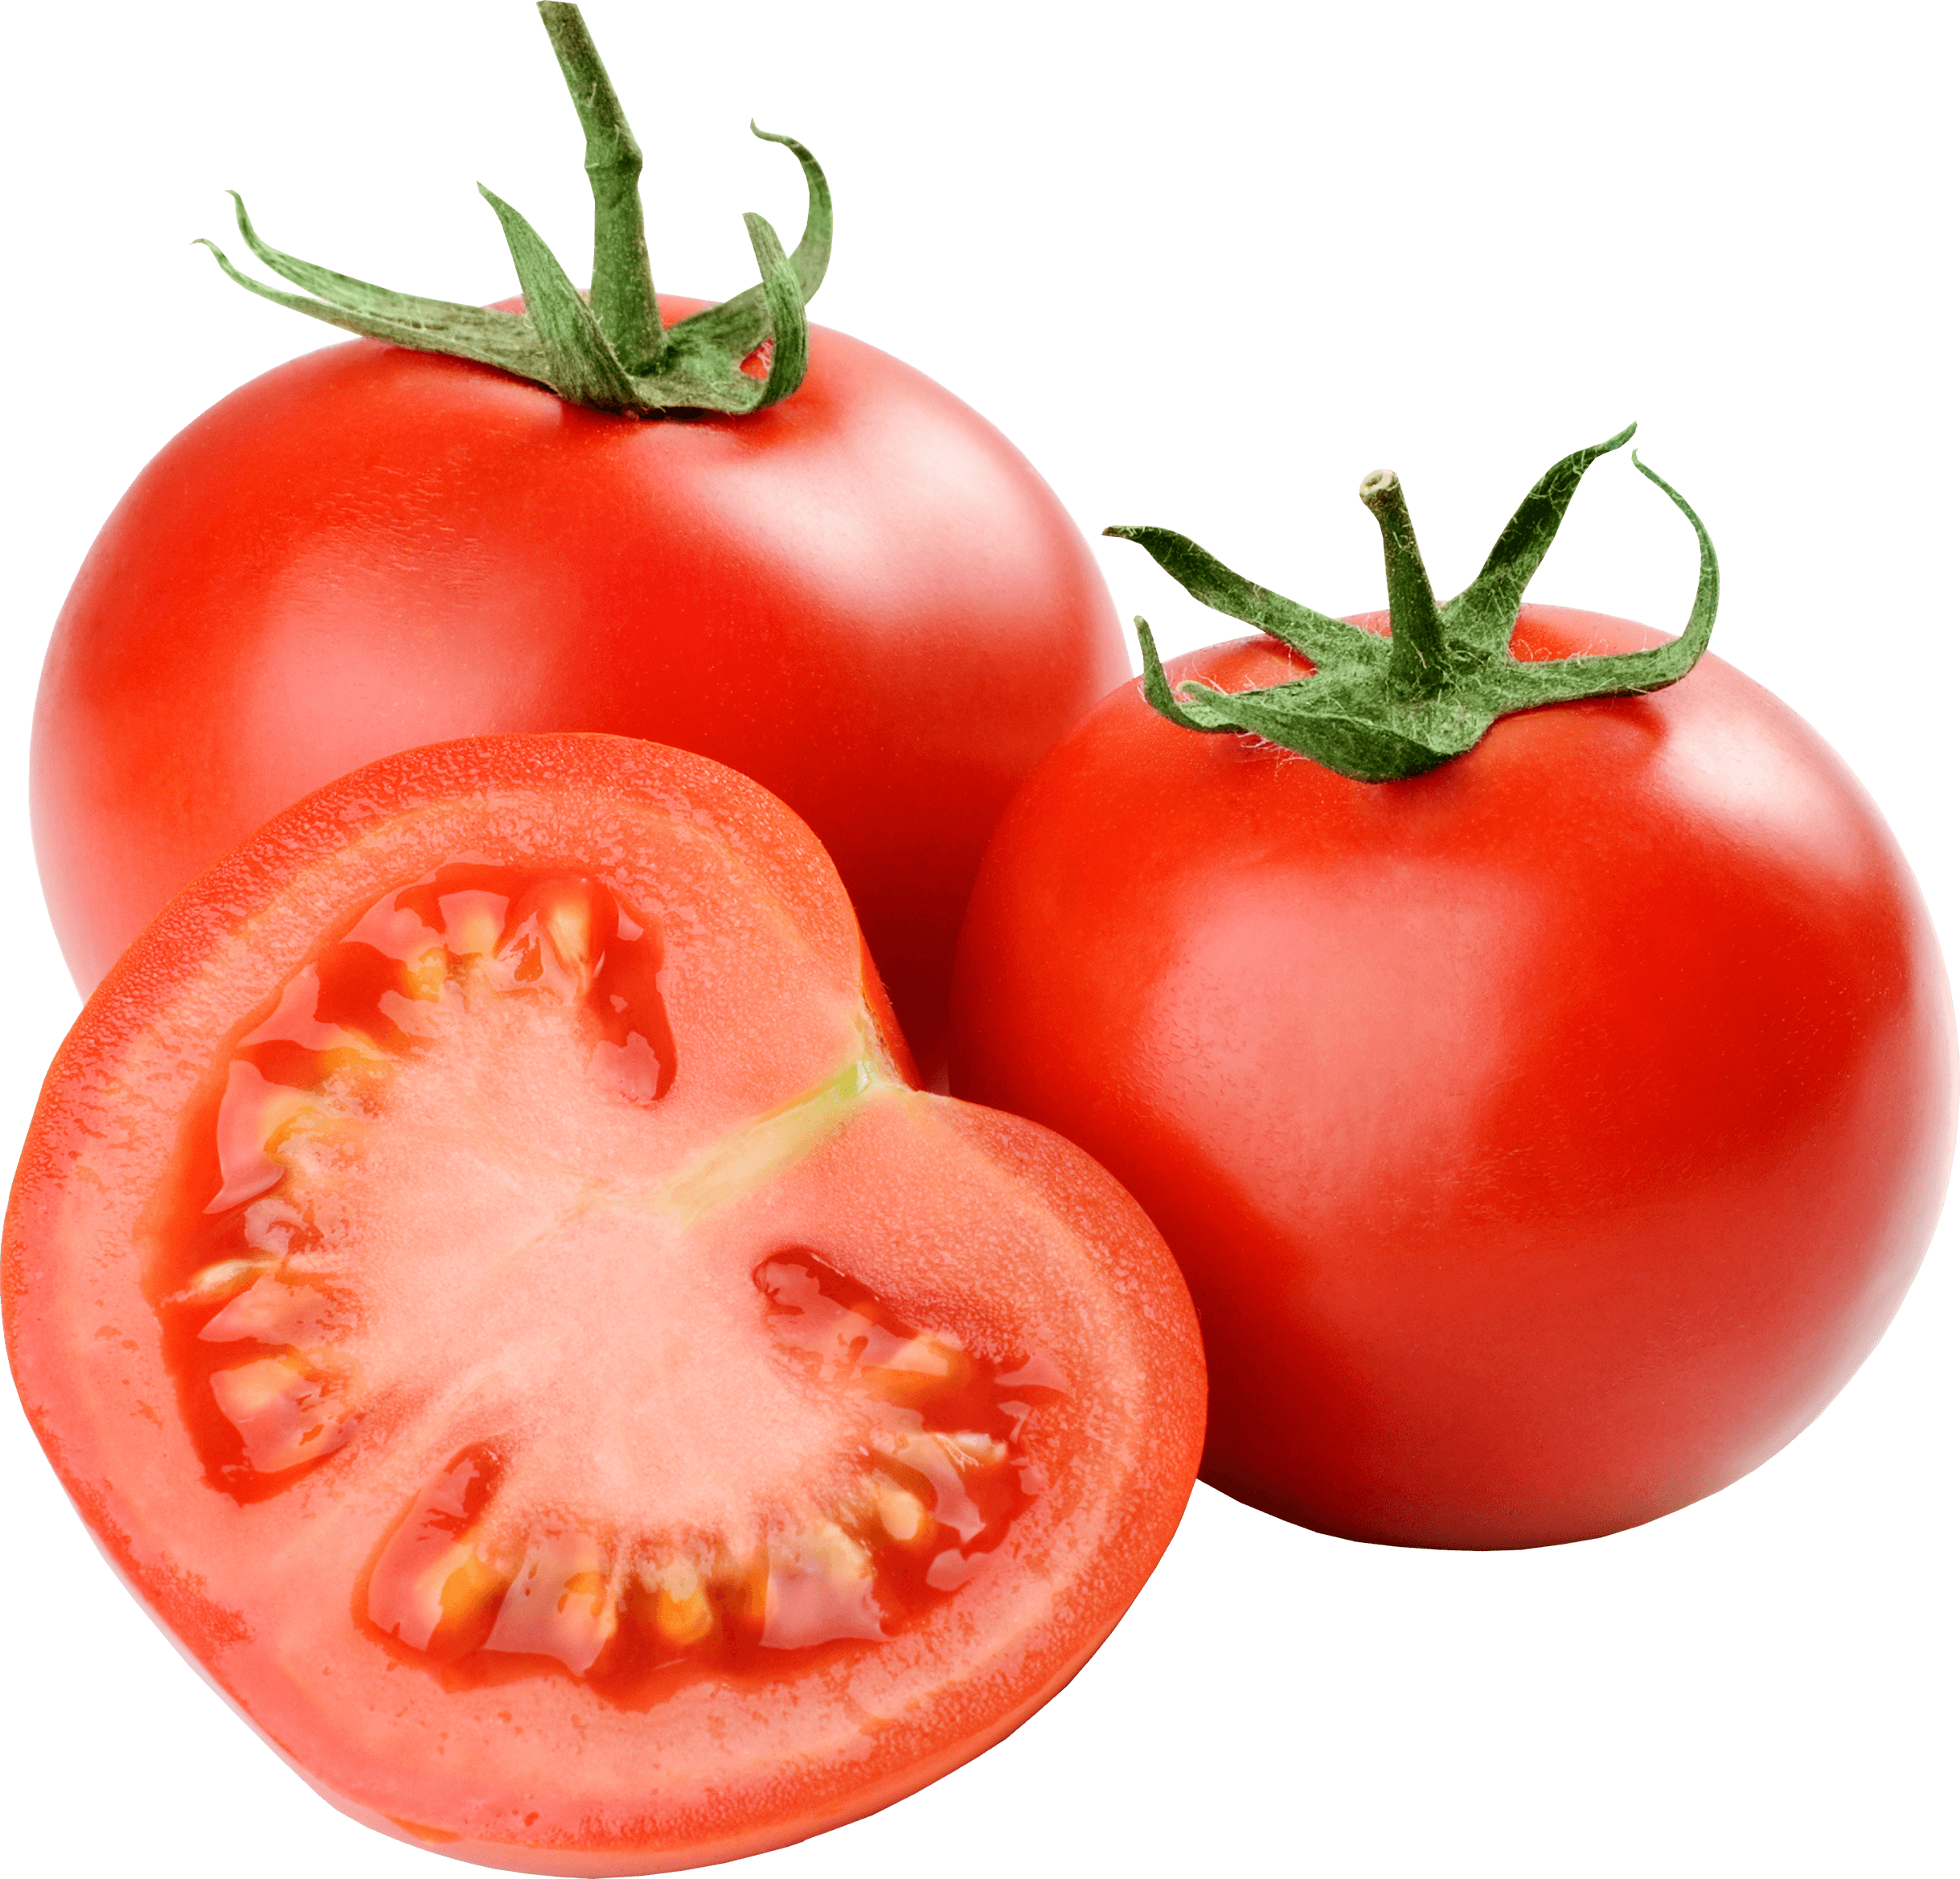 Fresh food png. Group of tomatoes transparent